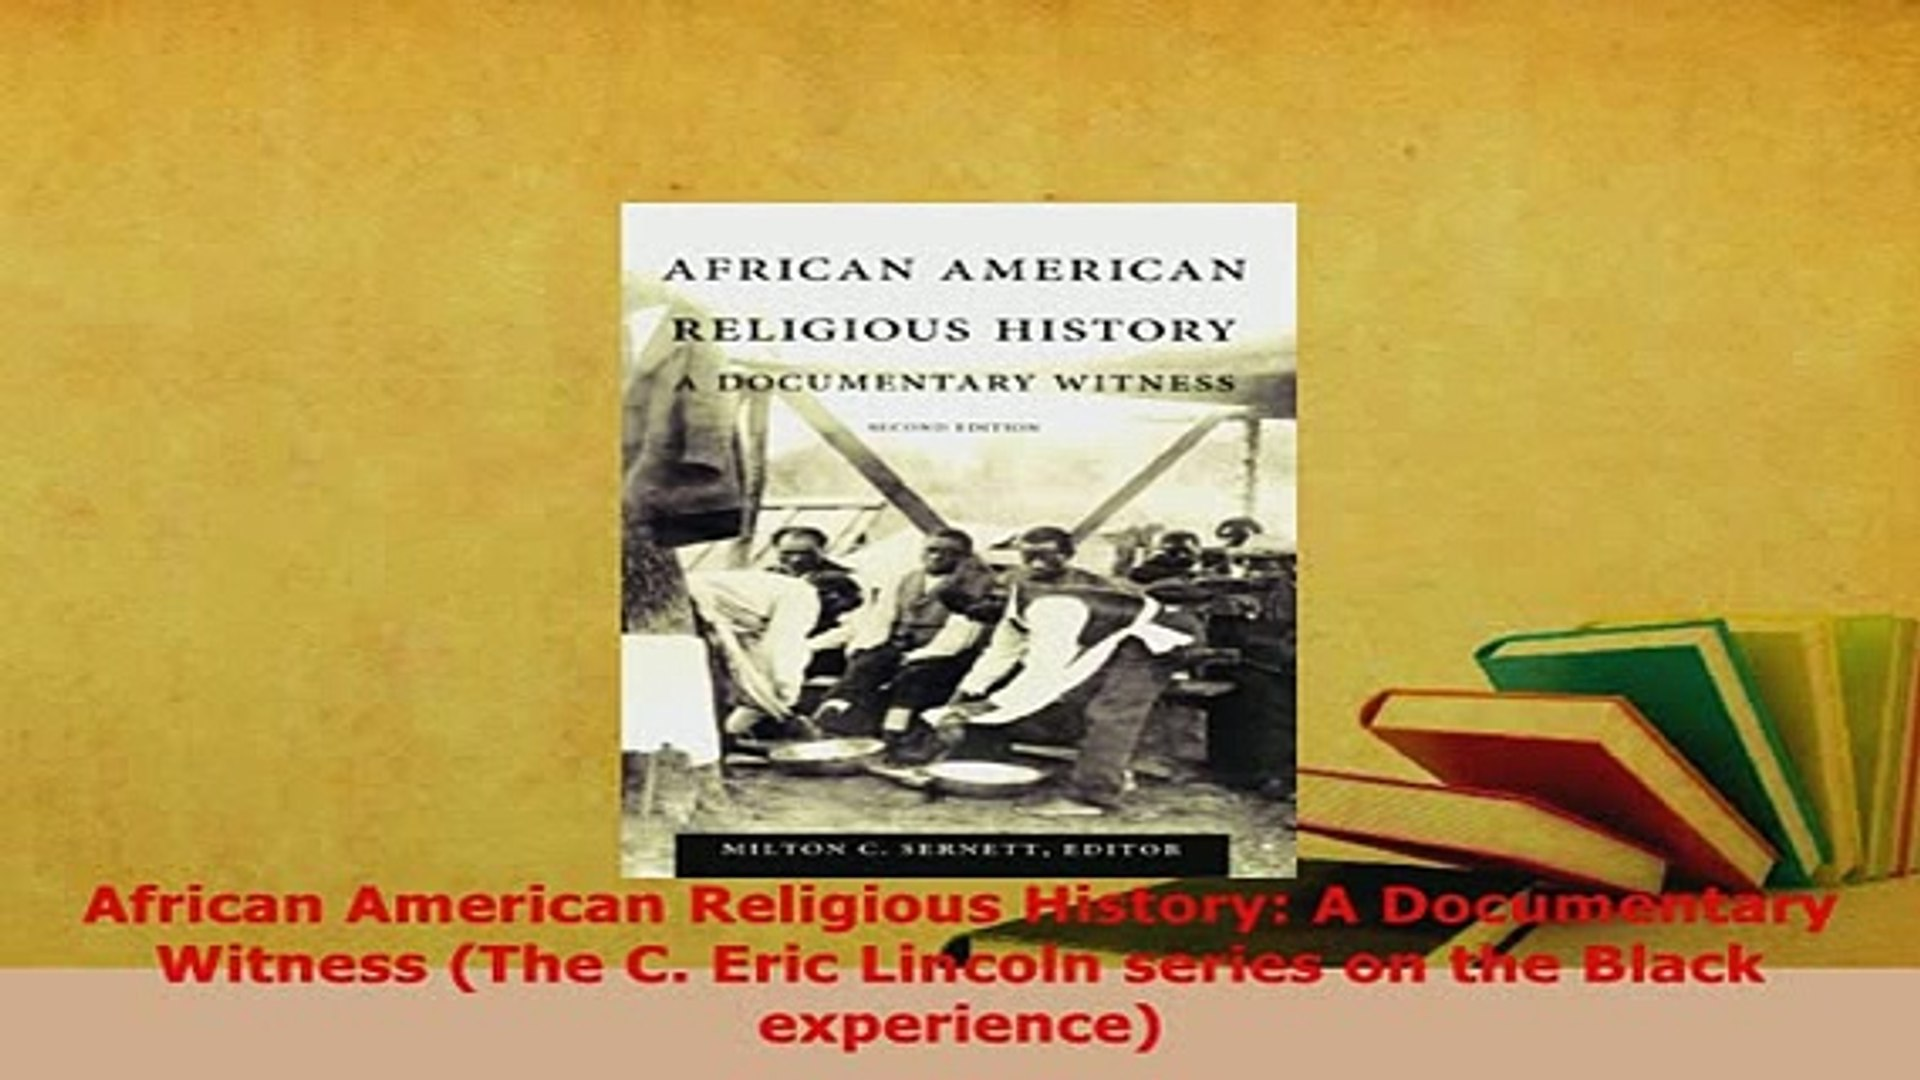 Download  African American Religious History A Documentary Witness The C Eric Lincoln series on Free